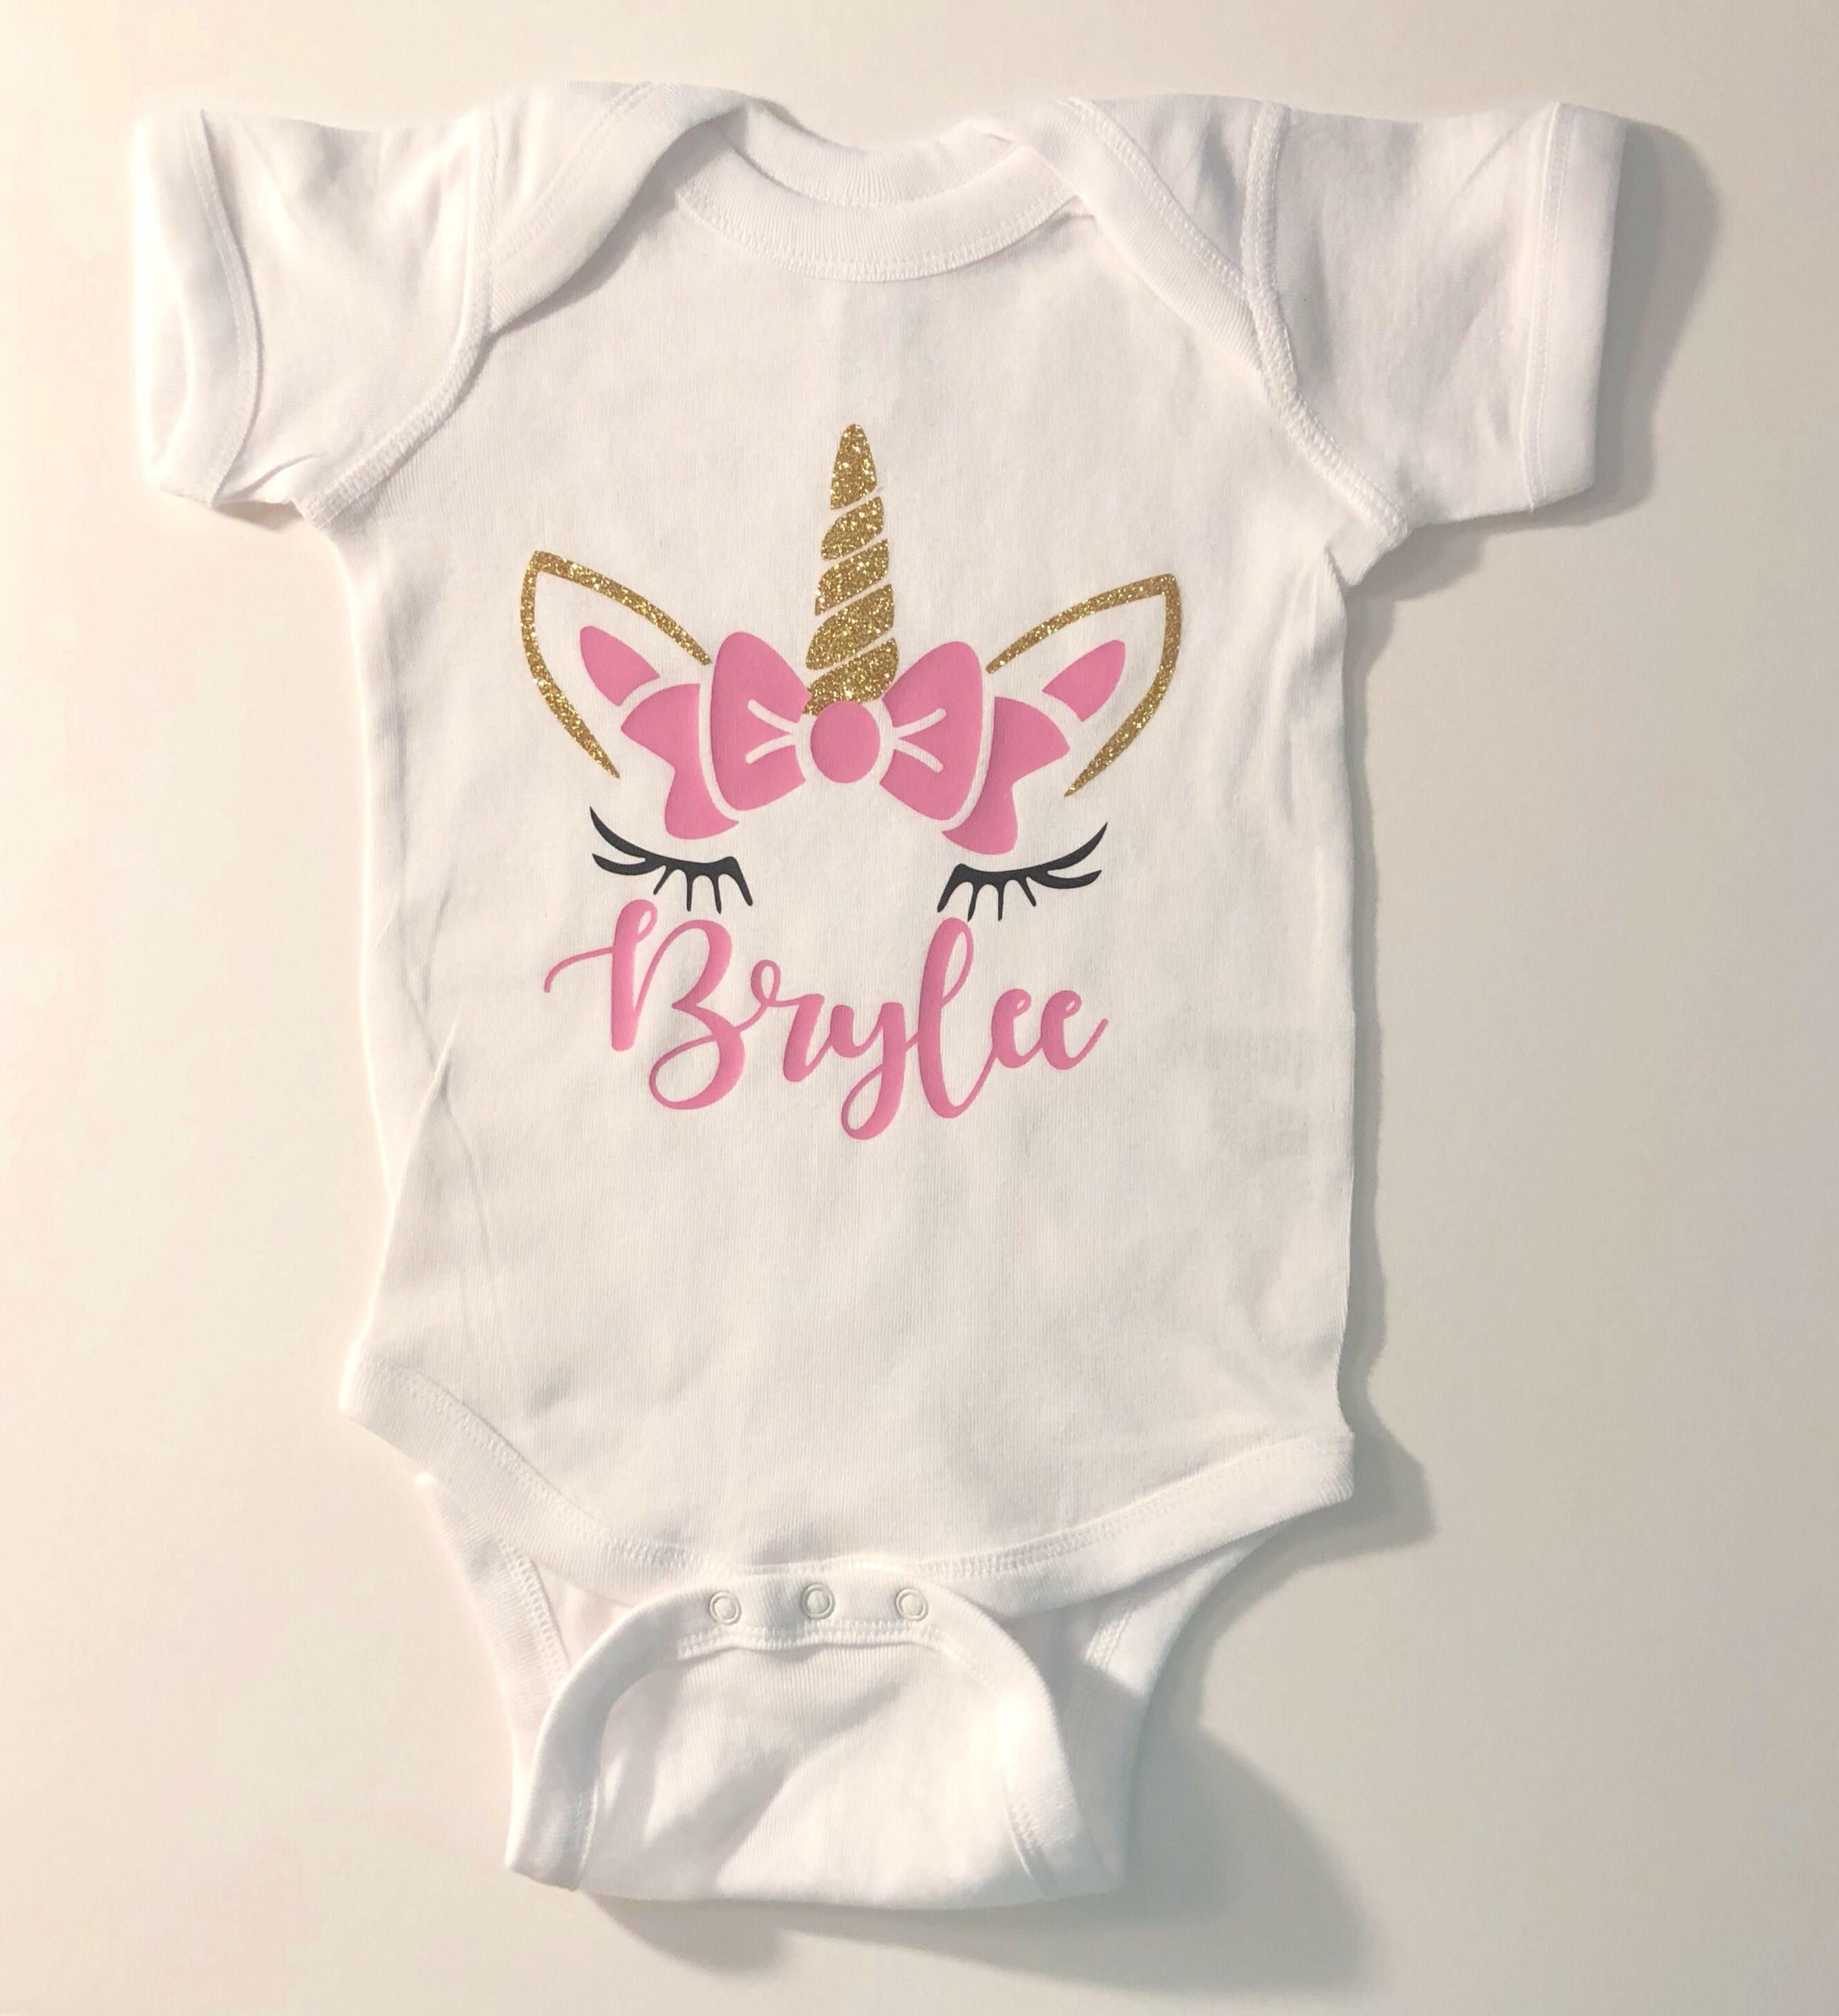 Unicorn Birthday Shirt With Bow And Horn For Girls Pink Gold First Bodysuit Customized Outfit One Year